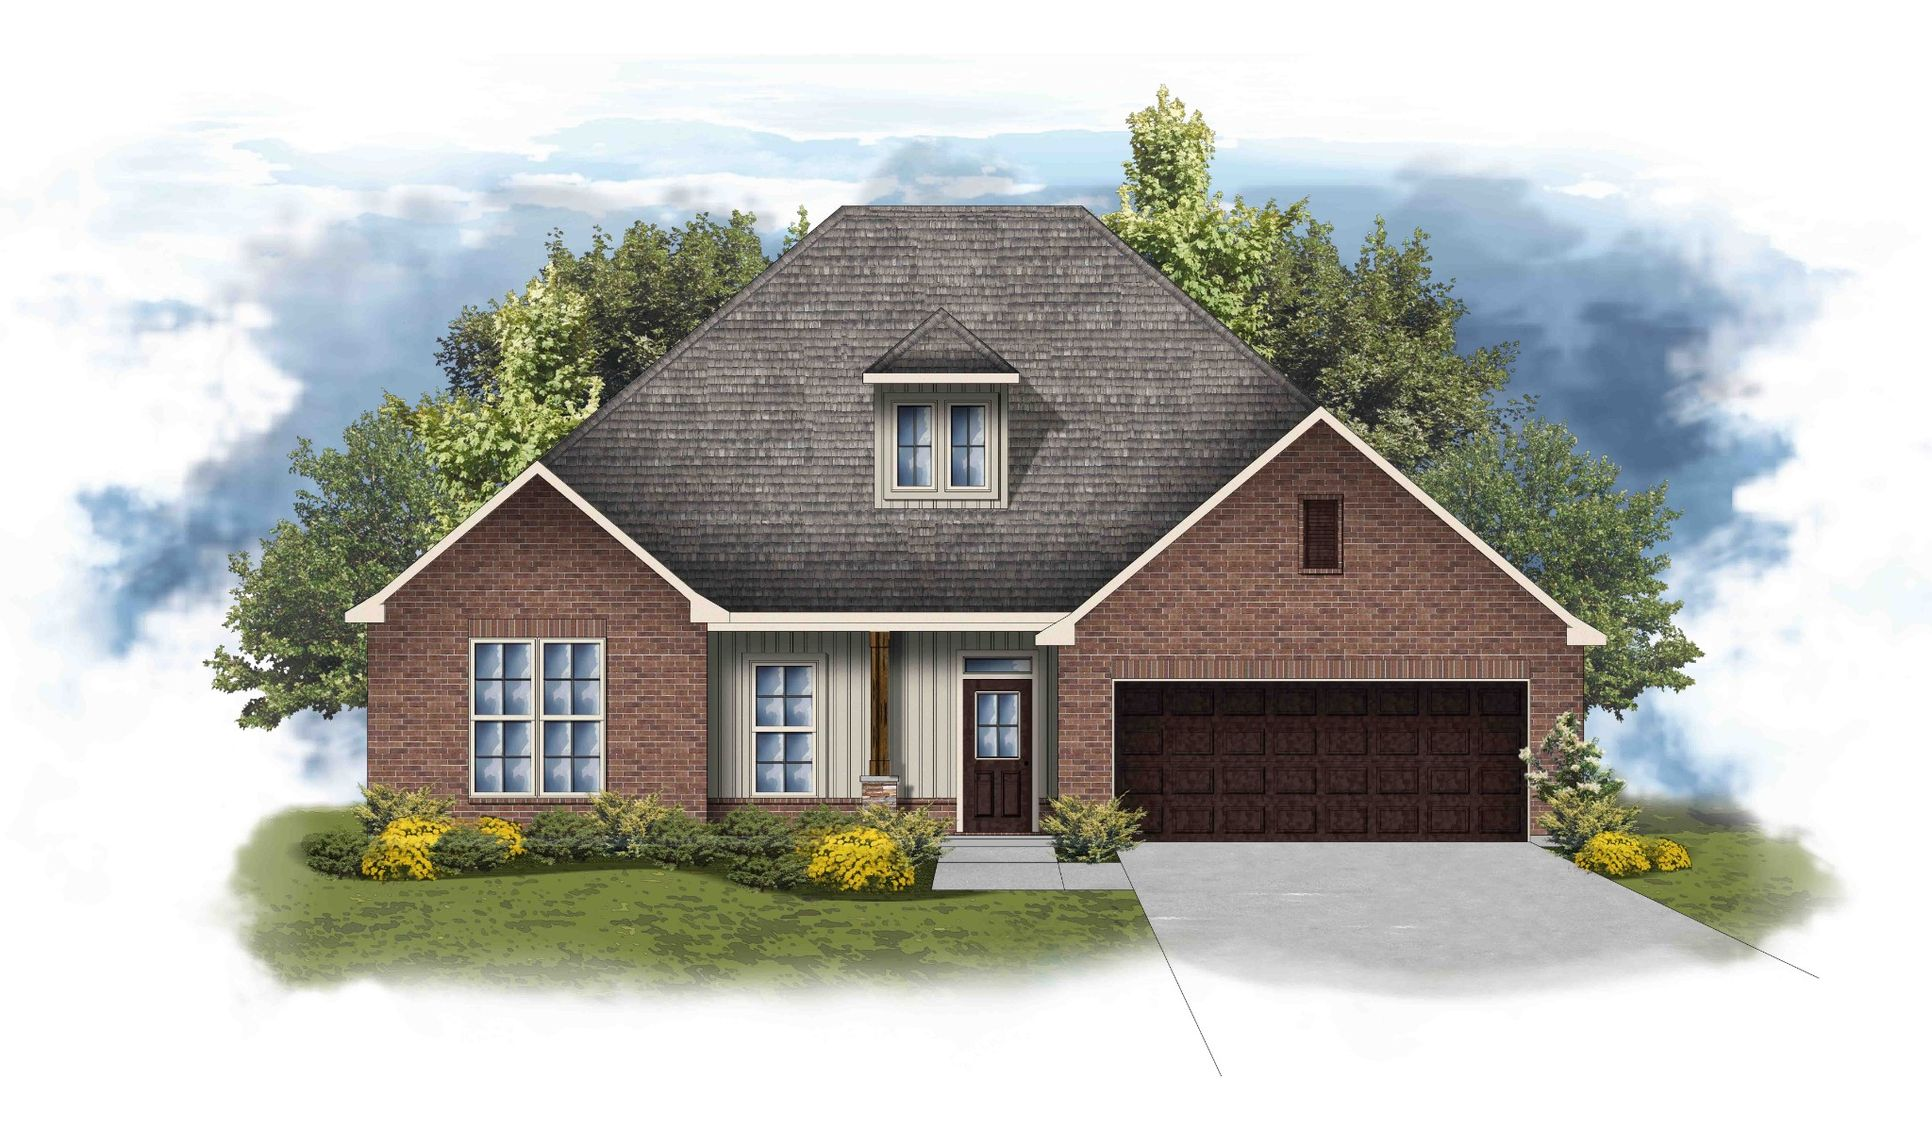 Collinswood II G - Stone Huntsville - Parkside Community floor plan